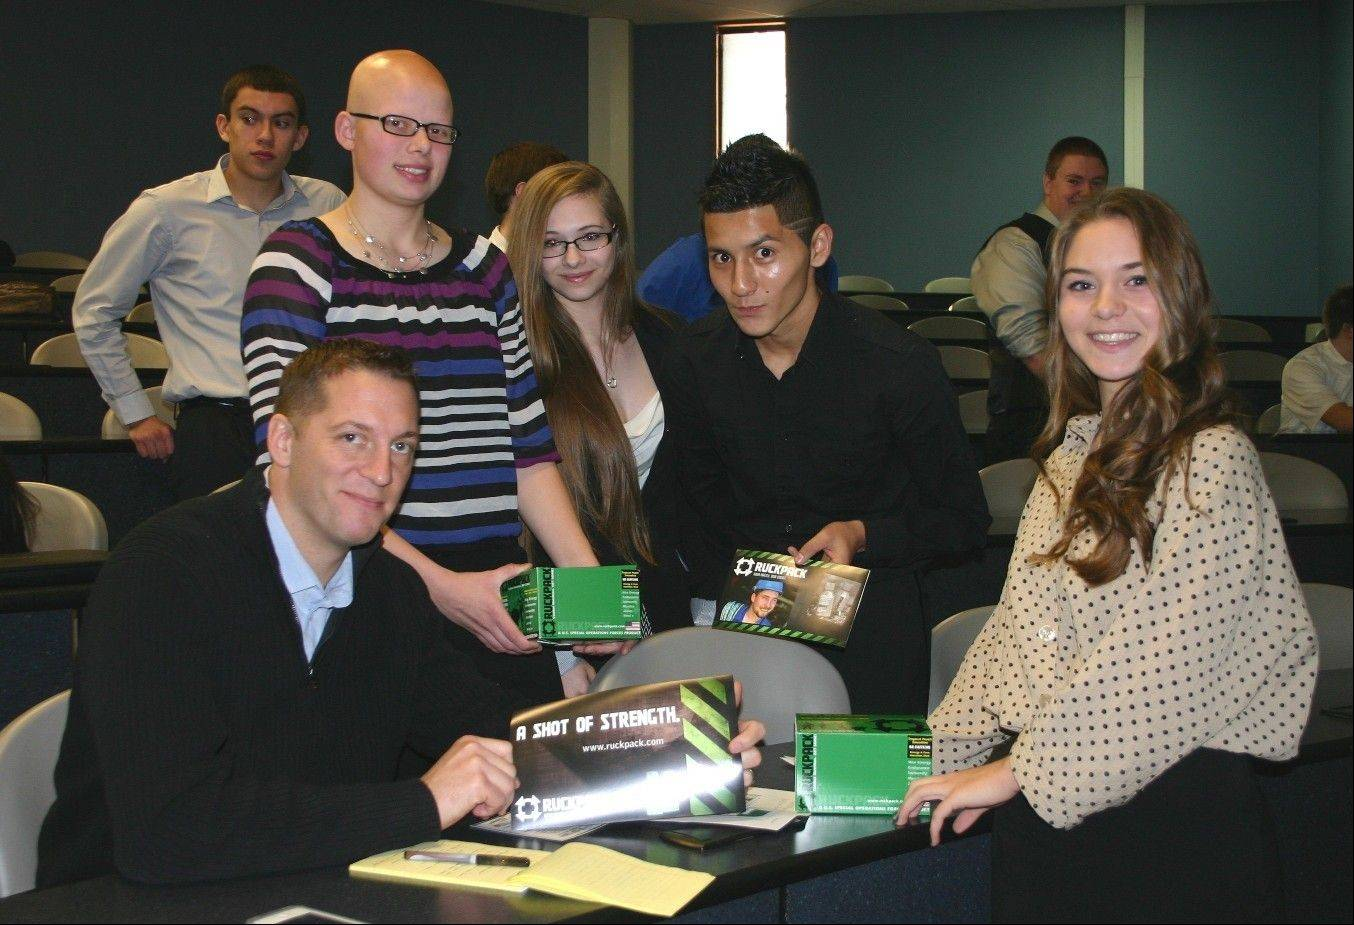 Rob Dyer, left, a Marine Corps veteran, entrepreneur and creator of the nutritional drink RuckPack, meets with Lake Park High School marketing students Sam Cummings, Sara Bobek, Mauricio Cardona and Cassidy McGinn. The students pitched marketing ideas for RuckPack to Dyer for their semester-end project.